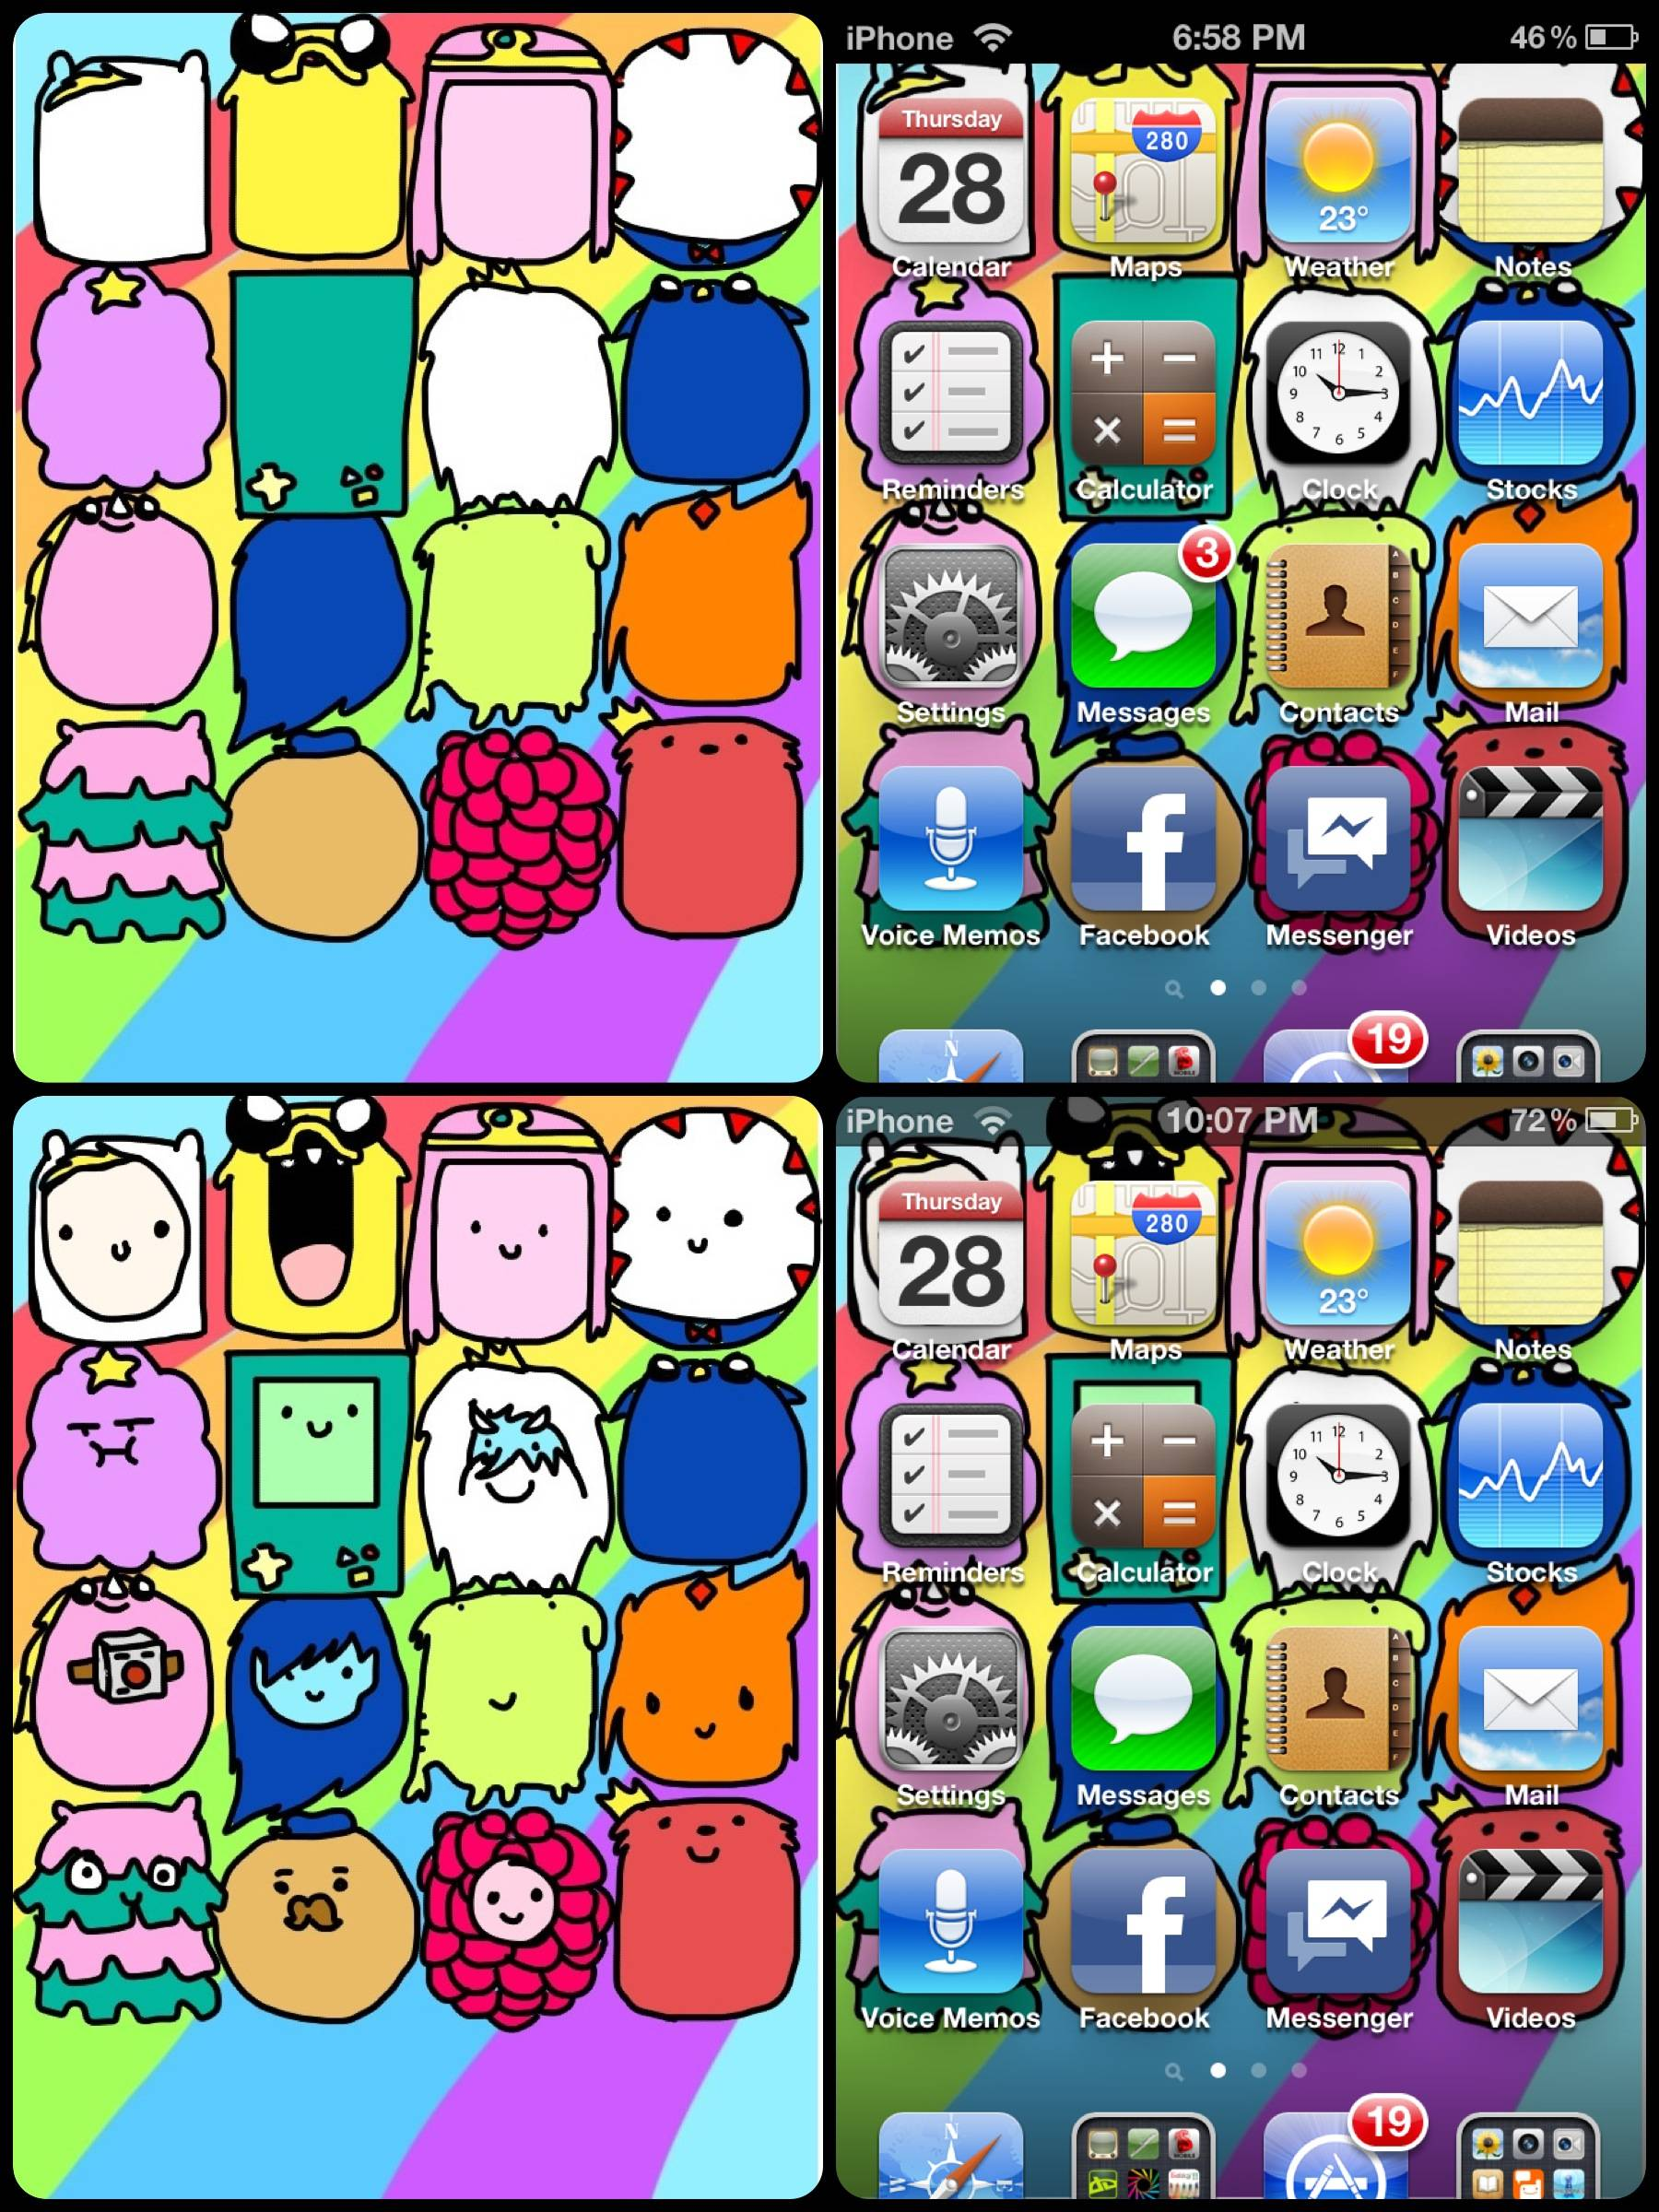 Wallpaper iphone adventure time - Adventure Time Iphone Wallpaper Id 1800 2400